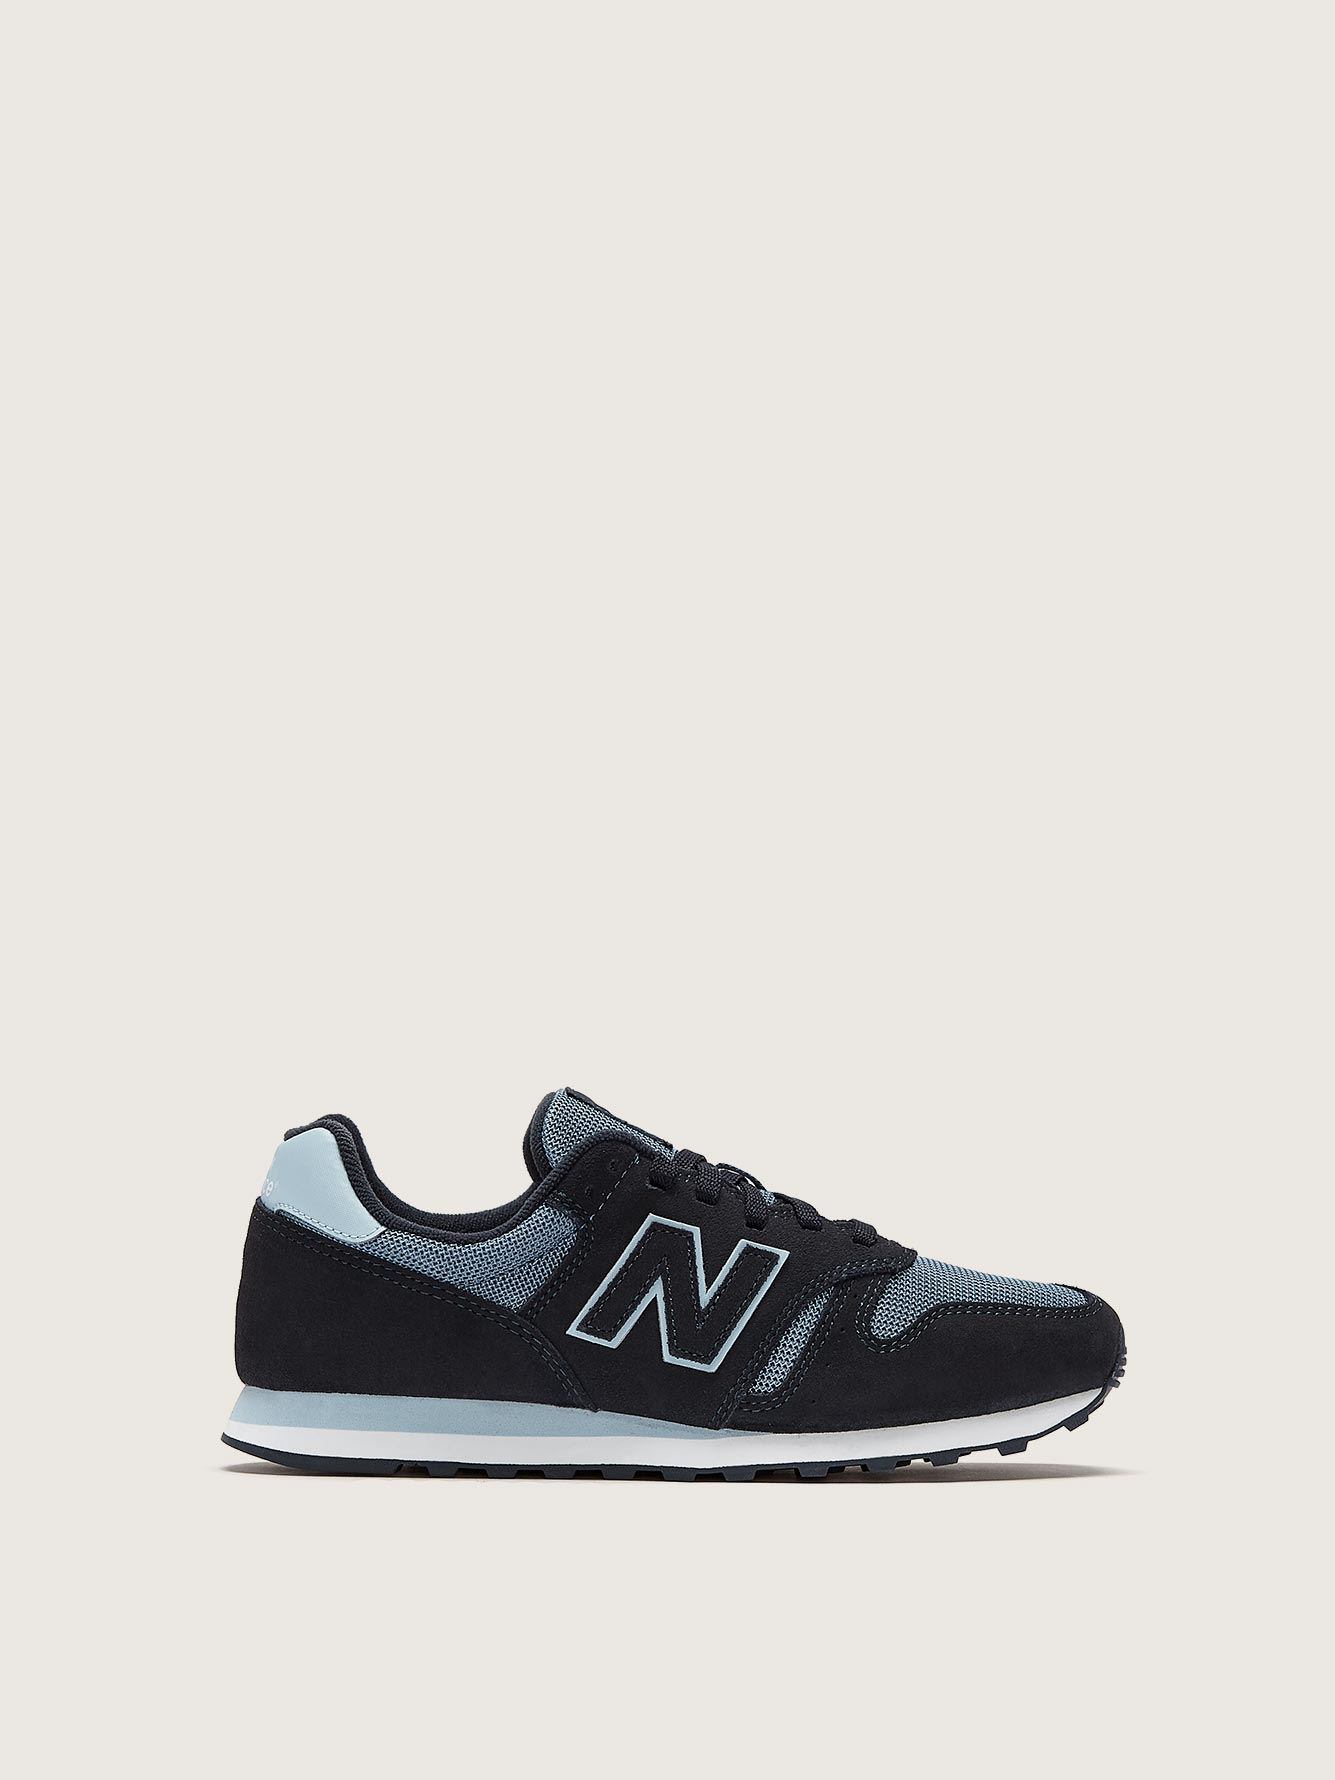 New Balance, Lifestyle - Chaussures sport, pieds larges